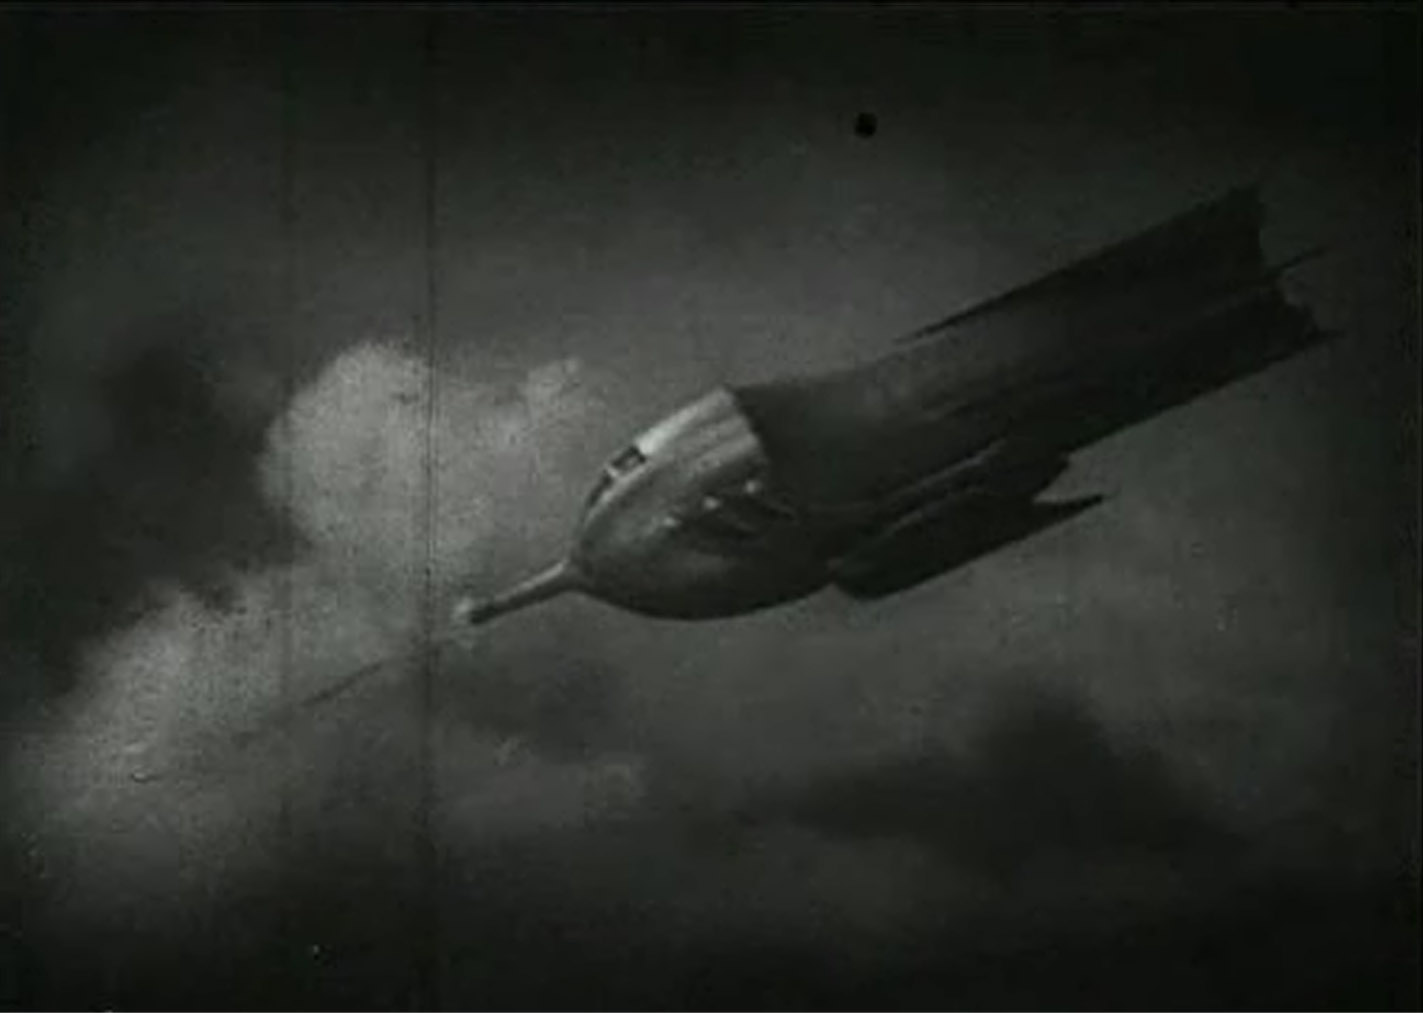 One of Max Teller's favorite flying thing from the Flash Gordon T.V. show, the rocket ship. www.salemhousepress.com